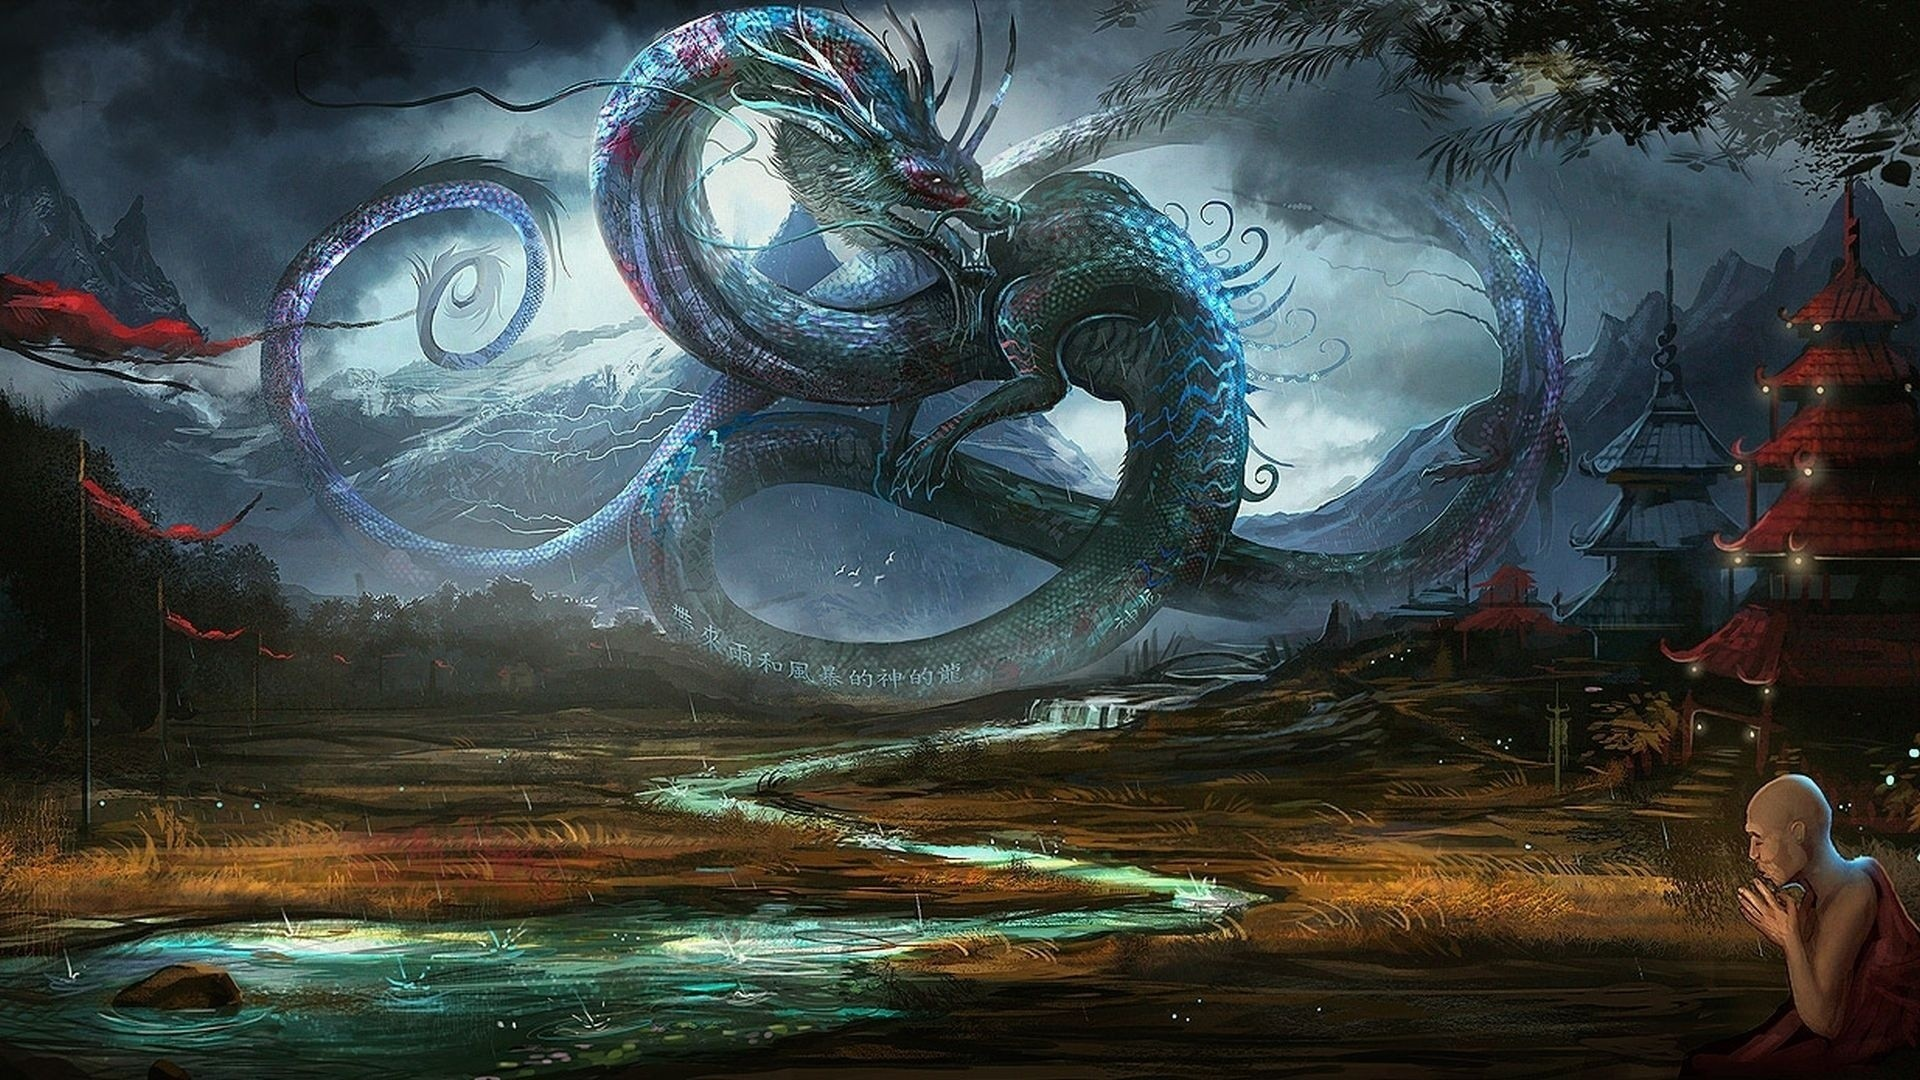 an analysis of themes in eyes of the dragon by stephen king The eyes of the dragon by stephen king  +chapters summary and analysis   character analysis, themes, and more - everything you need to sharpen your.